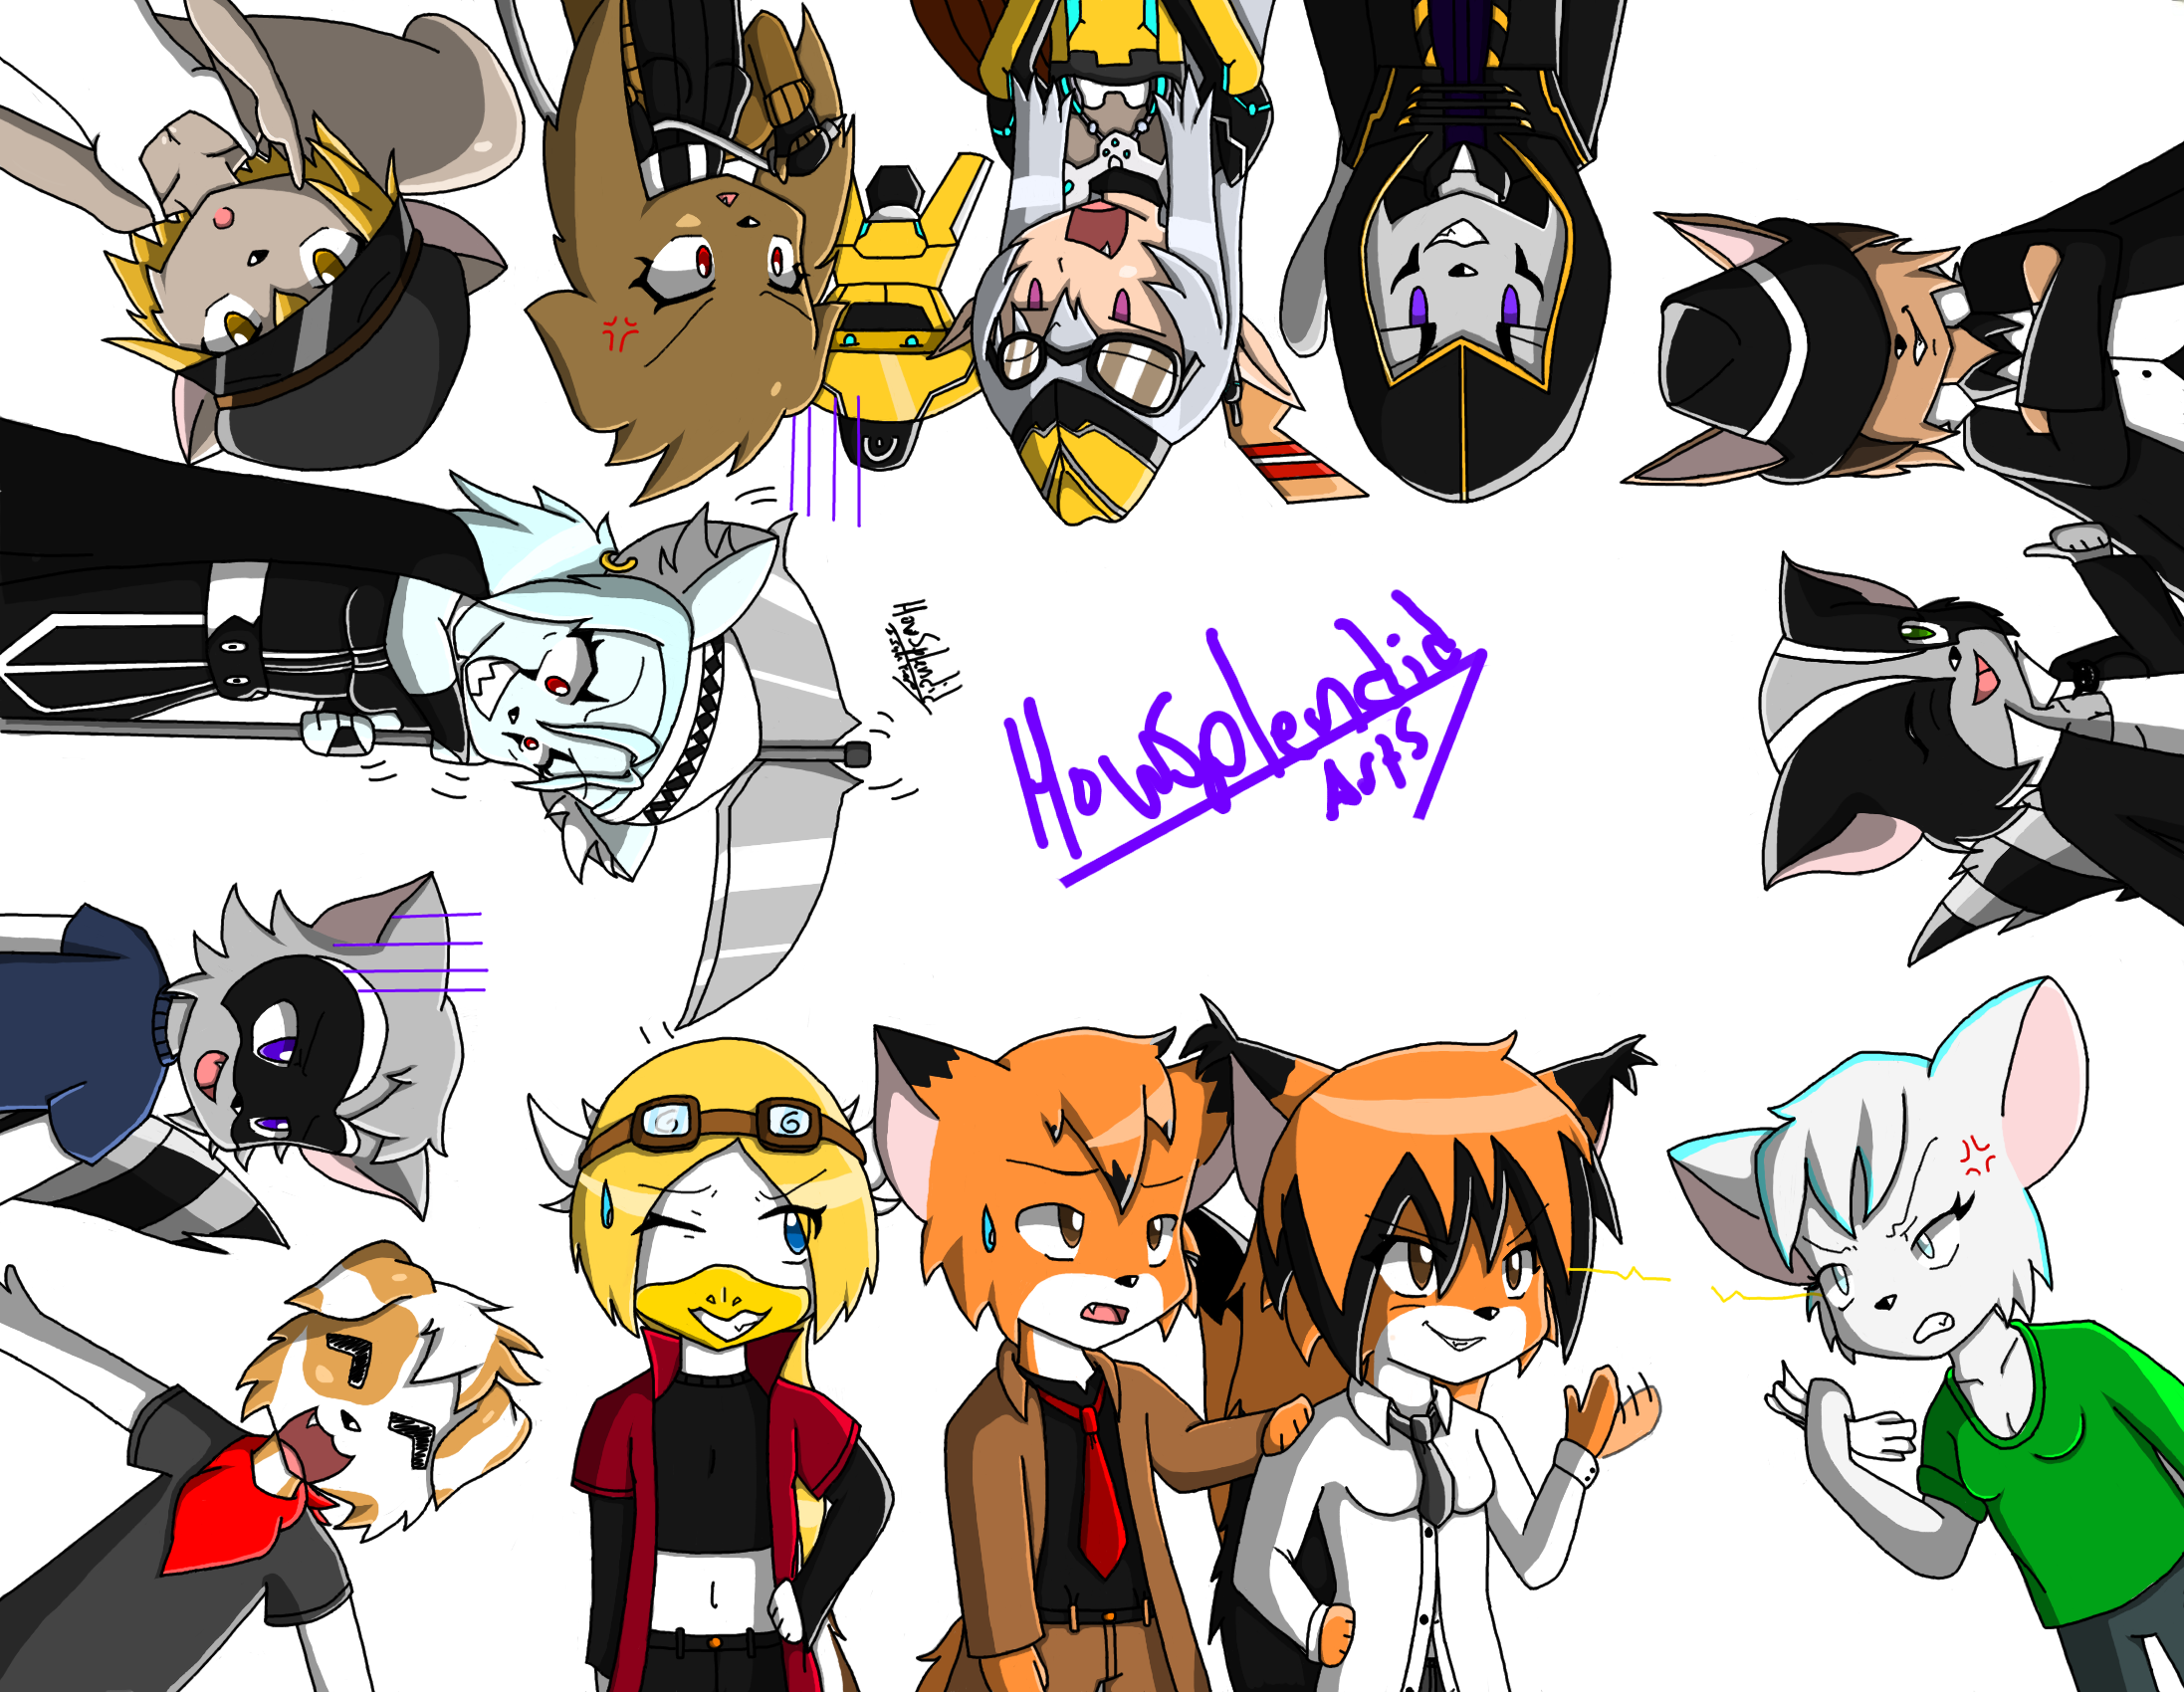 All my characters drawing